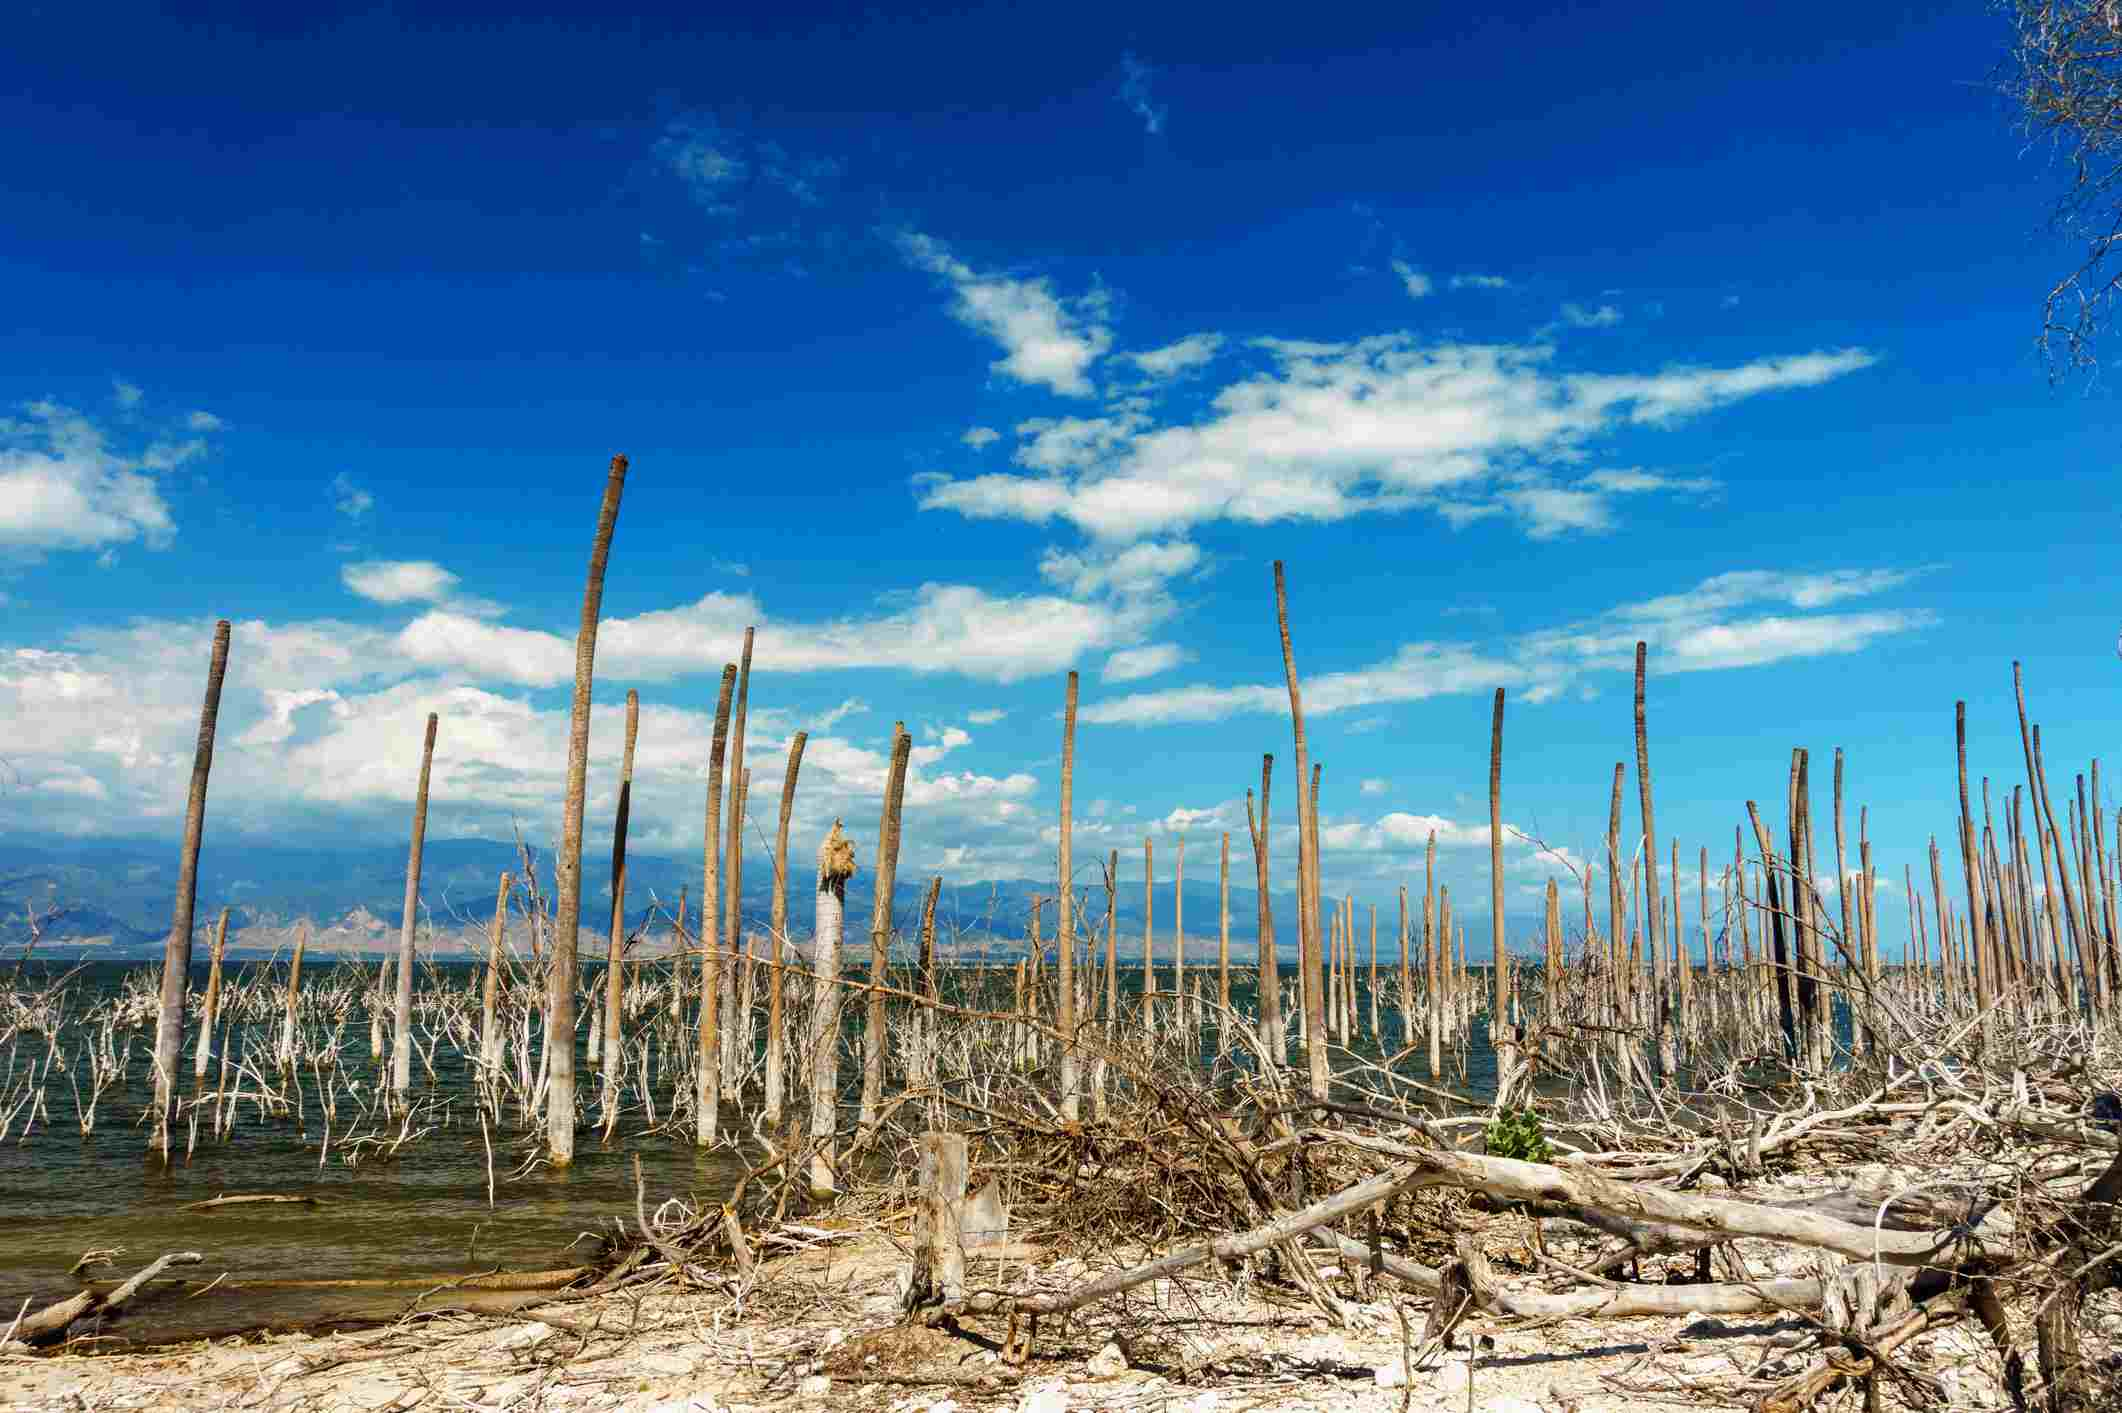 salt lake, the trunks of the trees without leaves in the water, Lake Enriquillo